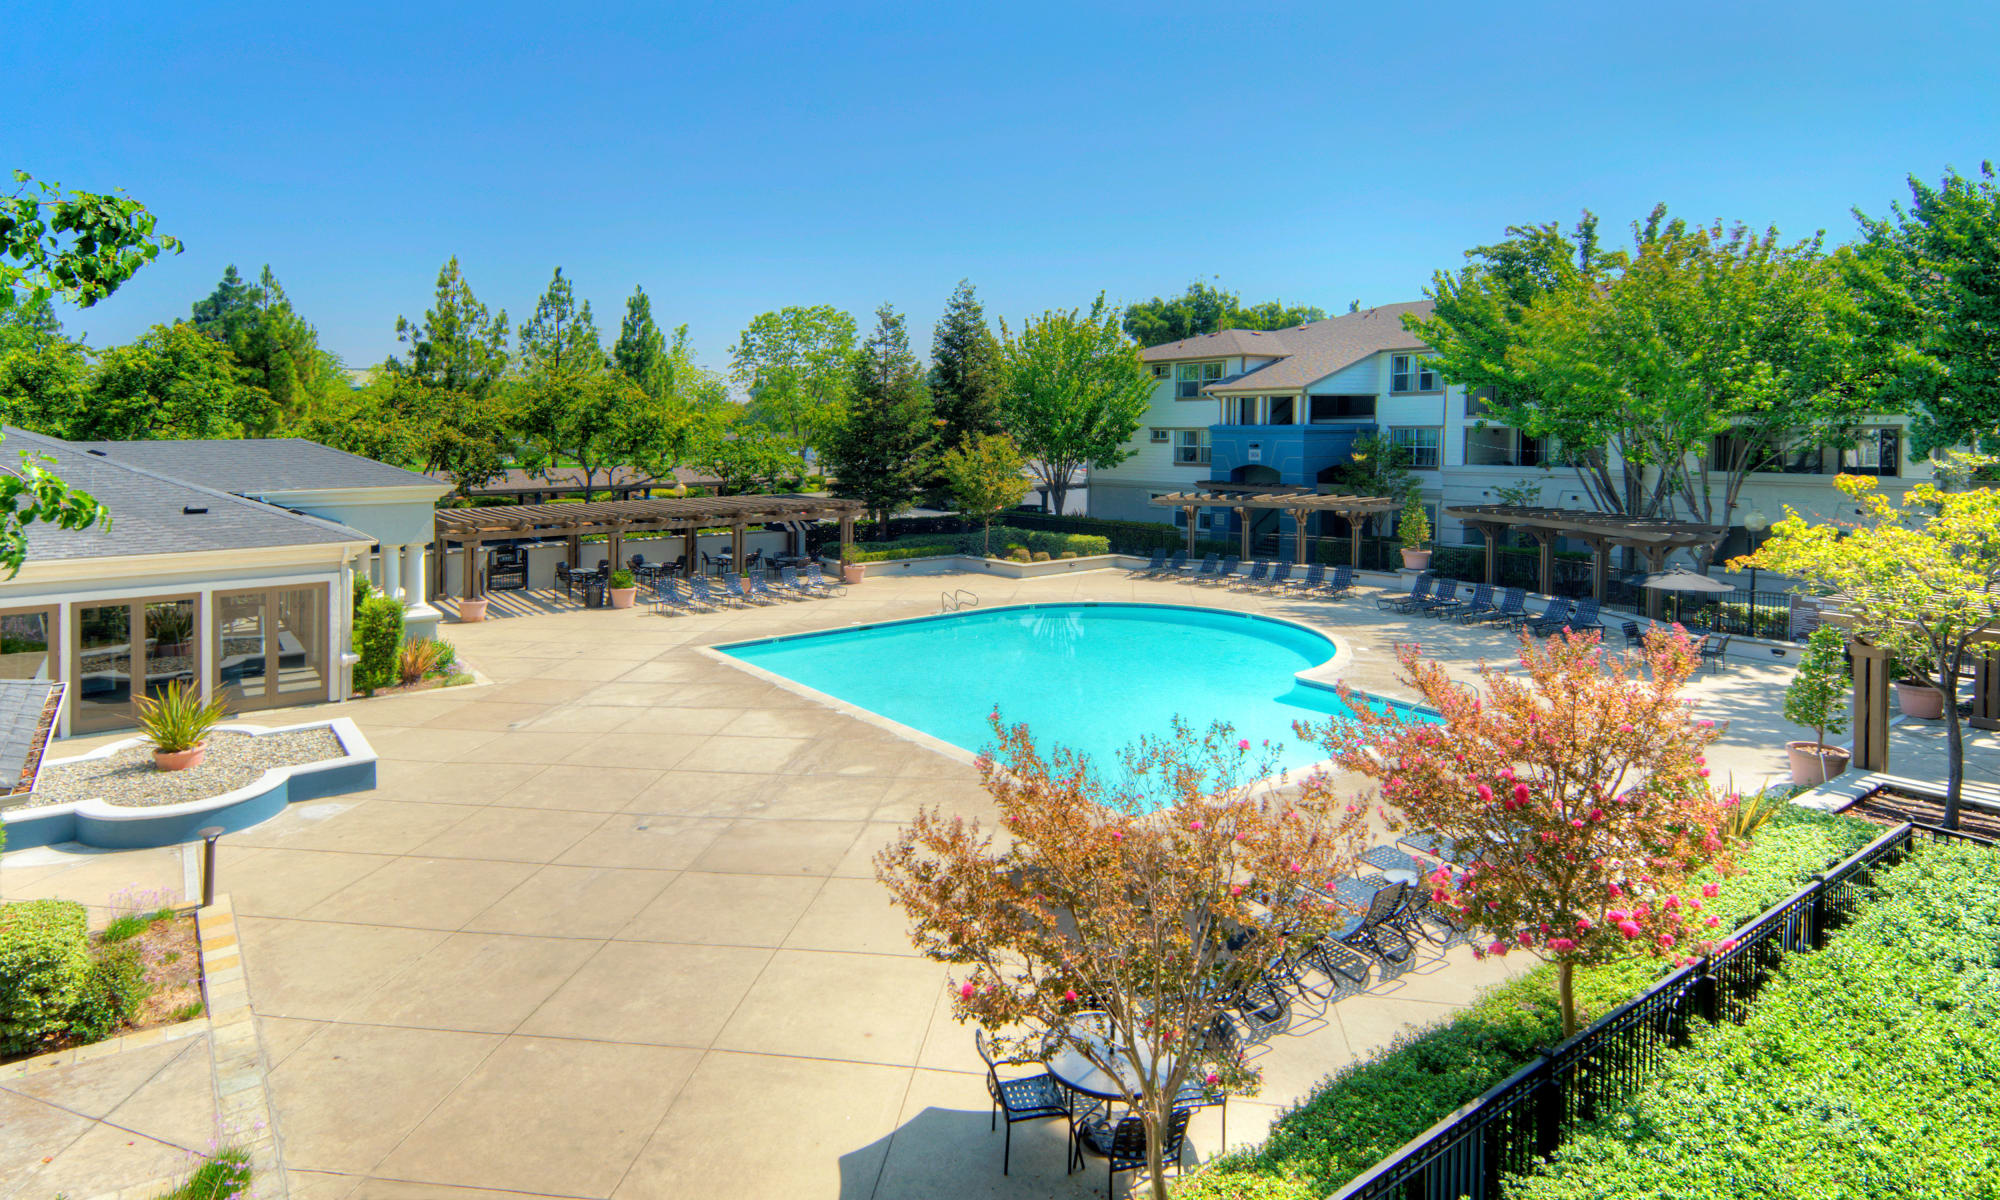 Floor plans as Park Hacienda Apartments in Pleasanton, California